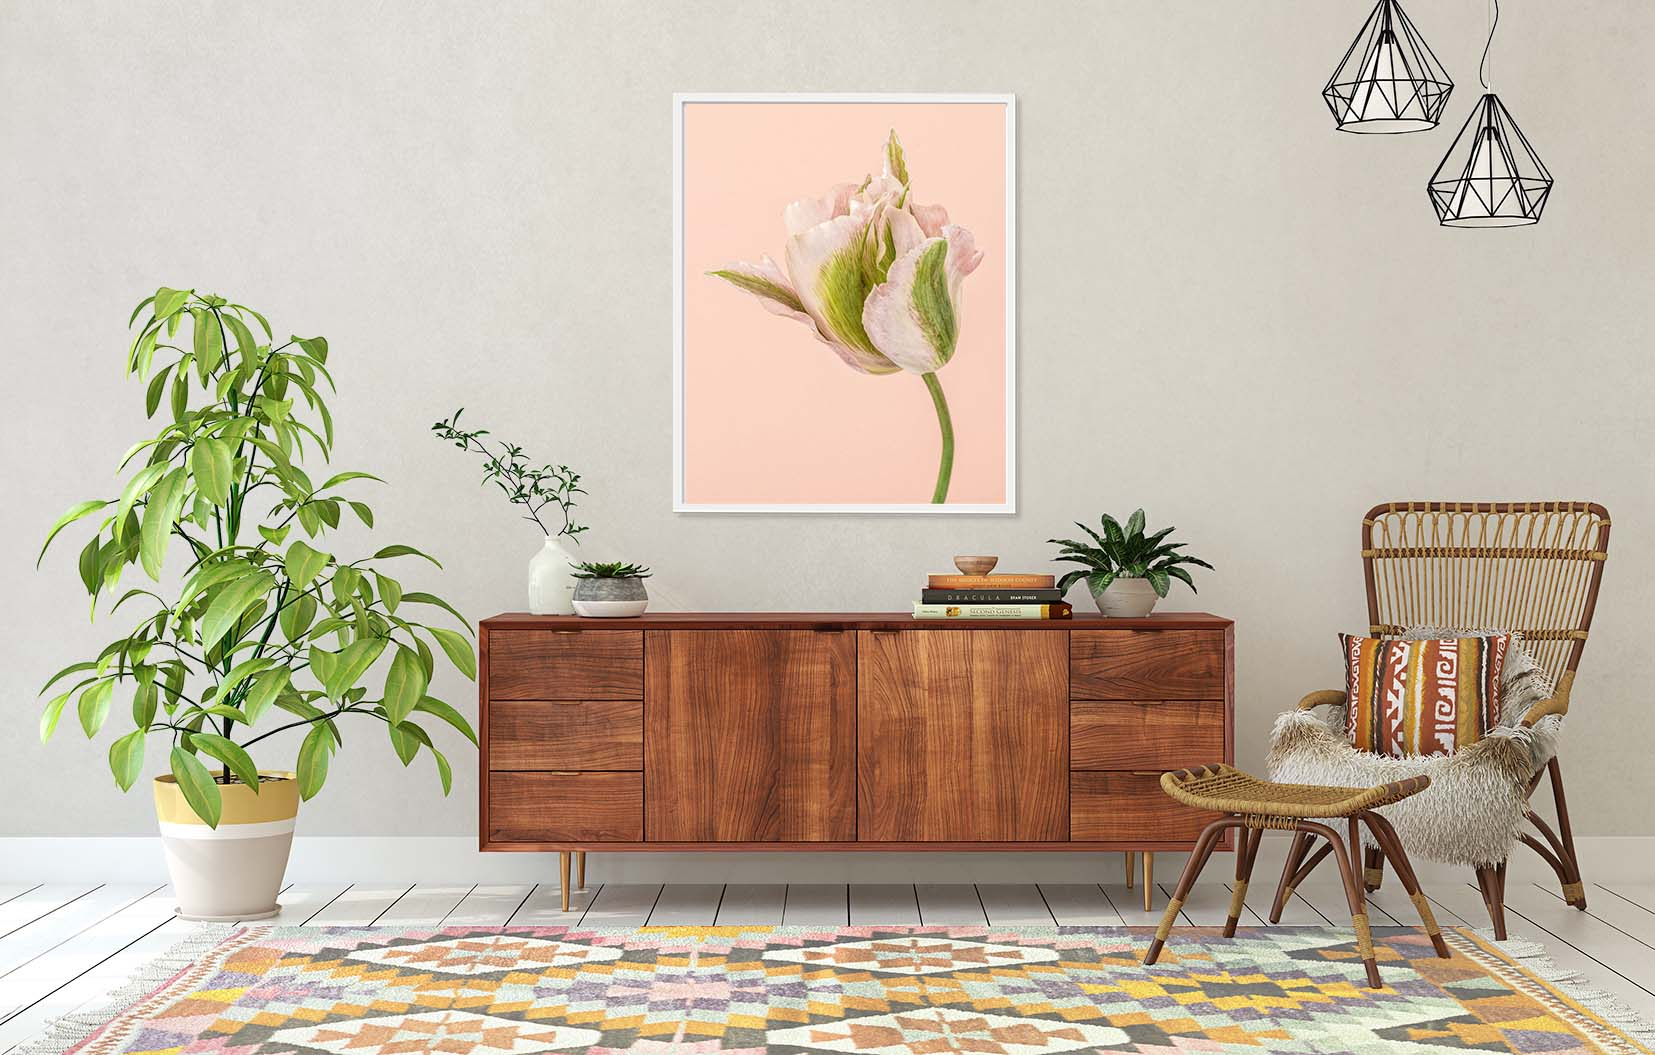 Framed limited edition photographic print of a pink and green tulip on the wall. Fine art floral prints by award-winning photographer Paul Coghlin FBIPP.